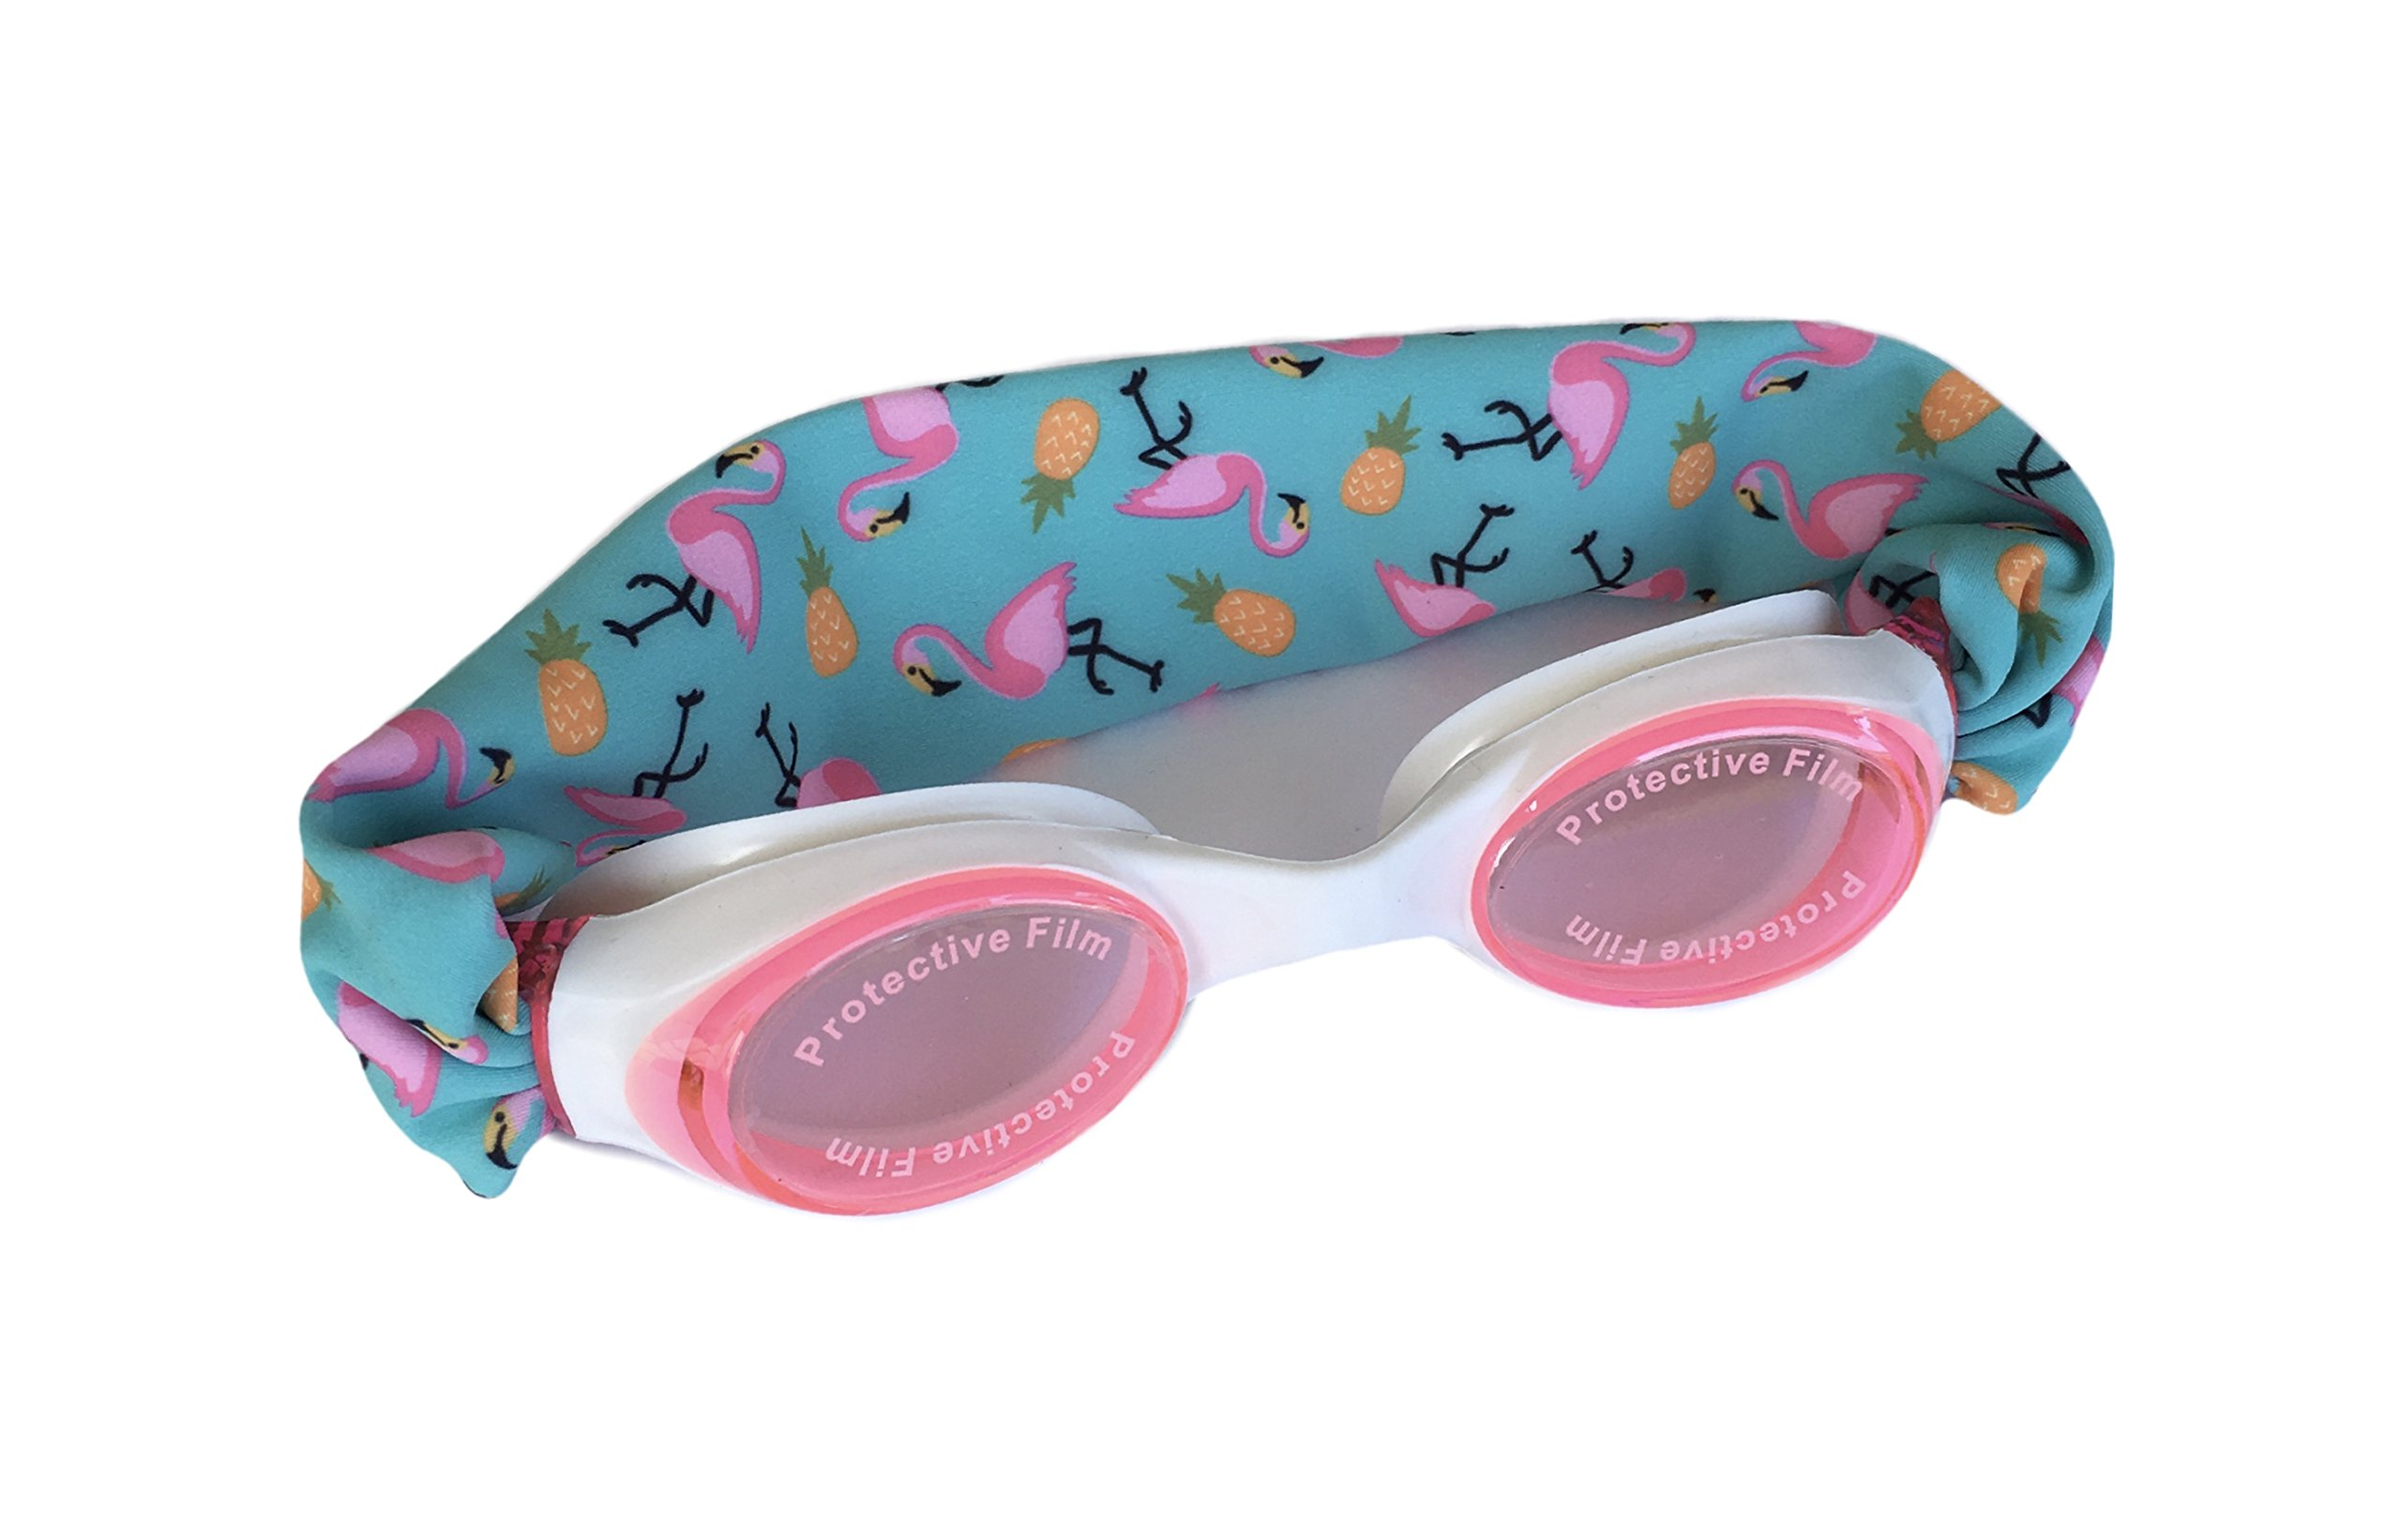 Splash Flamingo Island Swim Goggles - Comfortable, Fashionable, Fun - Fits Kids & Adults - Won't Pull Your Hair - Easy to Use - High Visibility Anti-Fog Lenses - Patent Pending